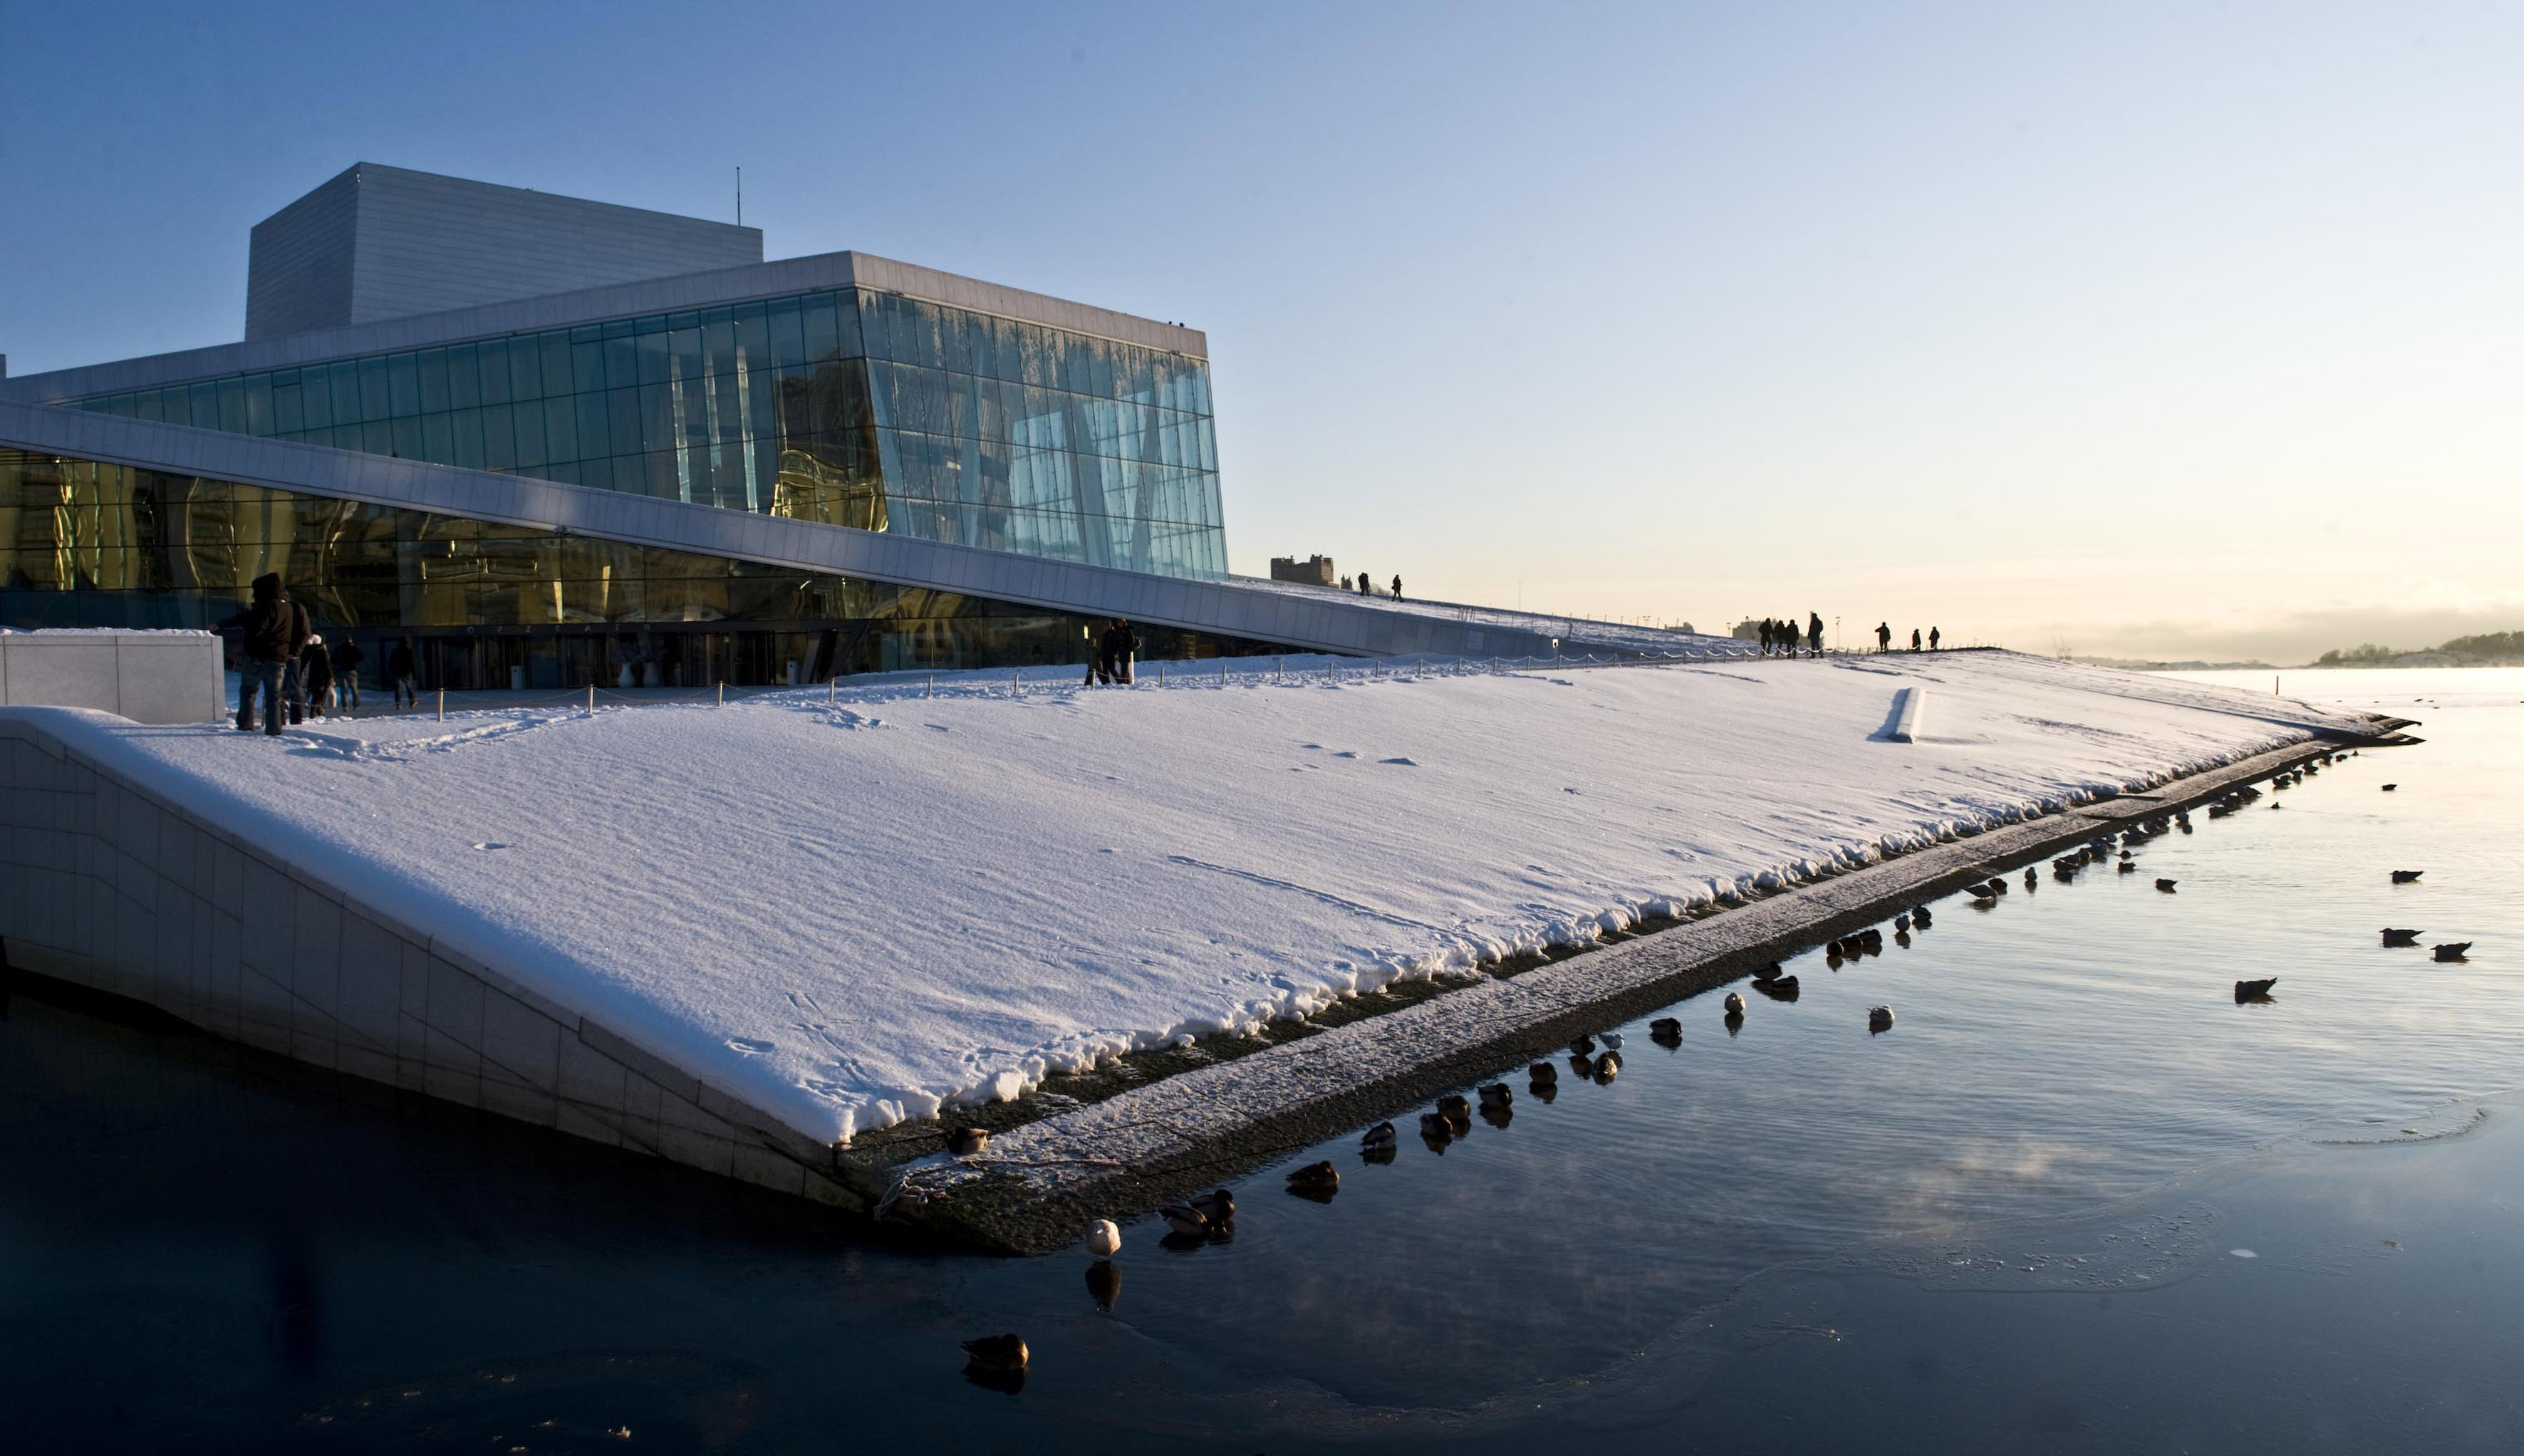 Oslo Opera House in winter